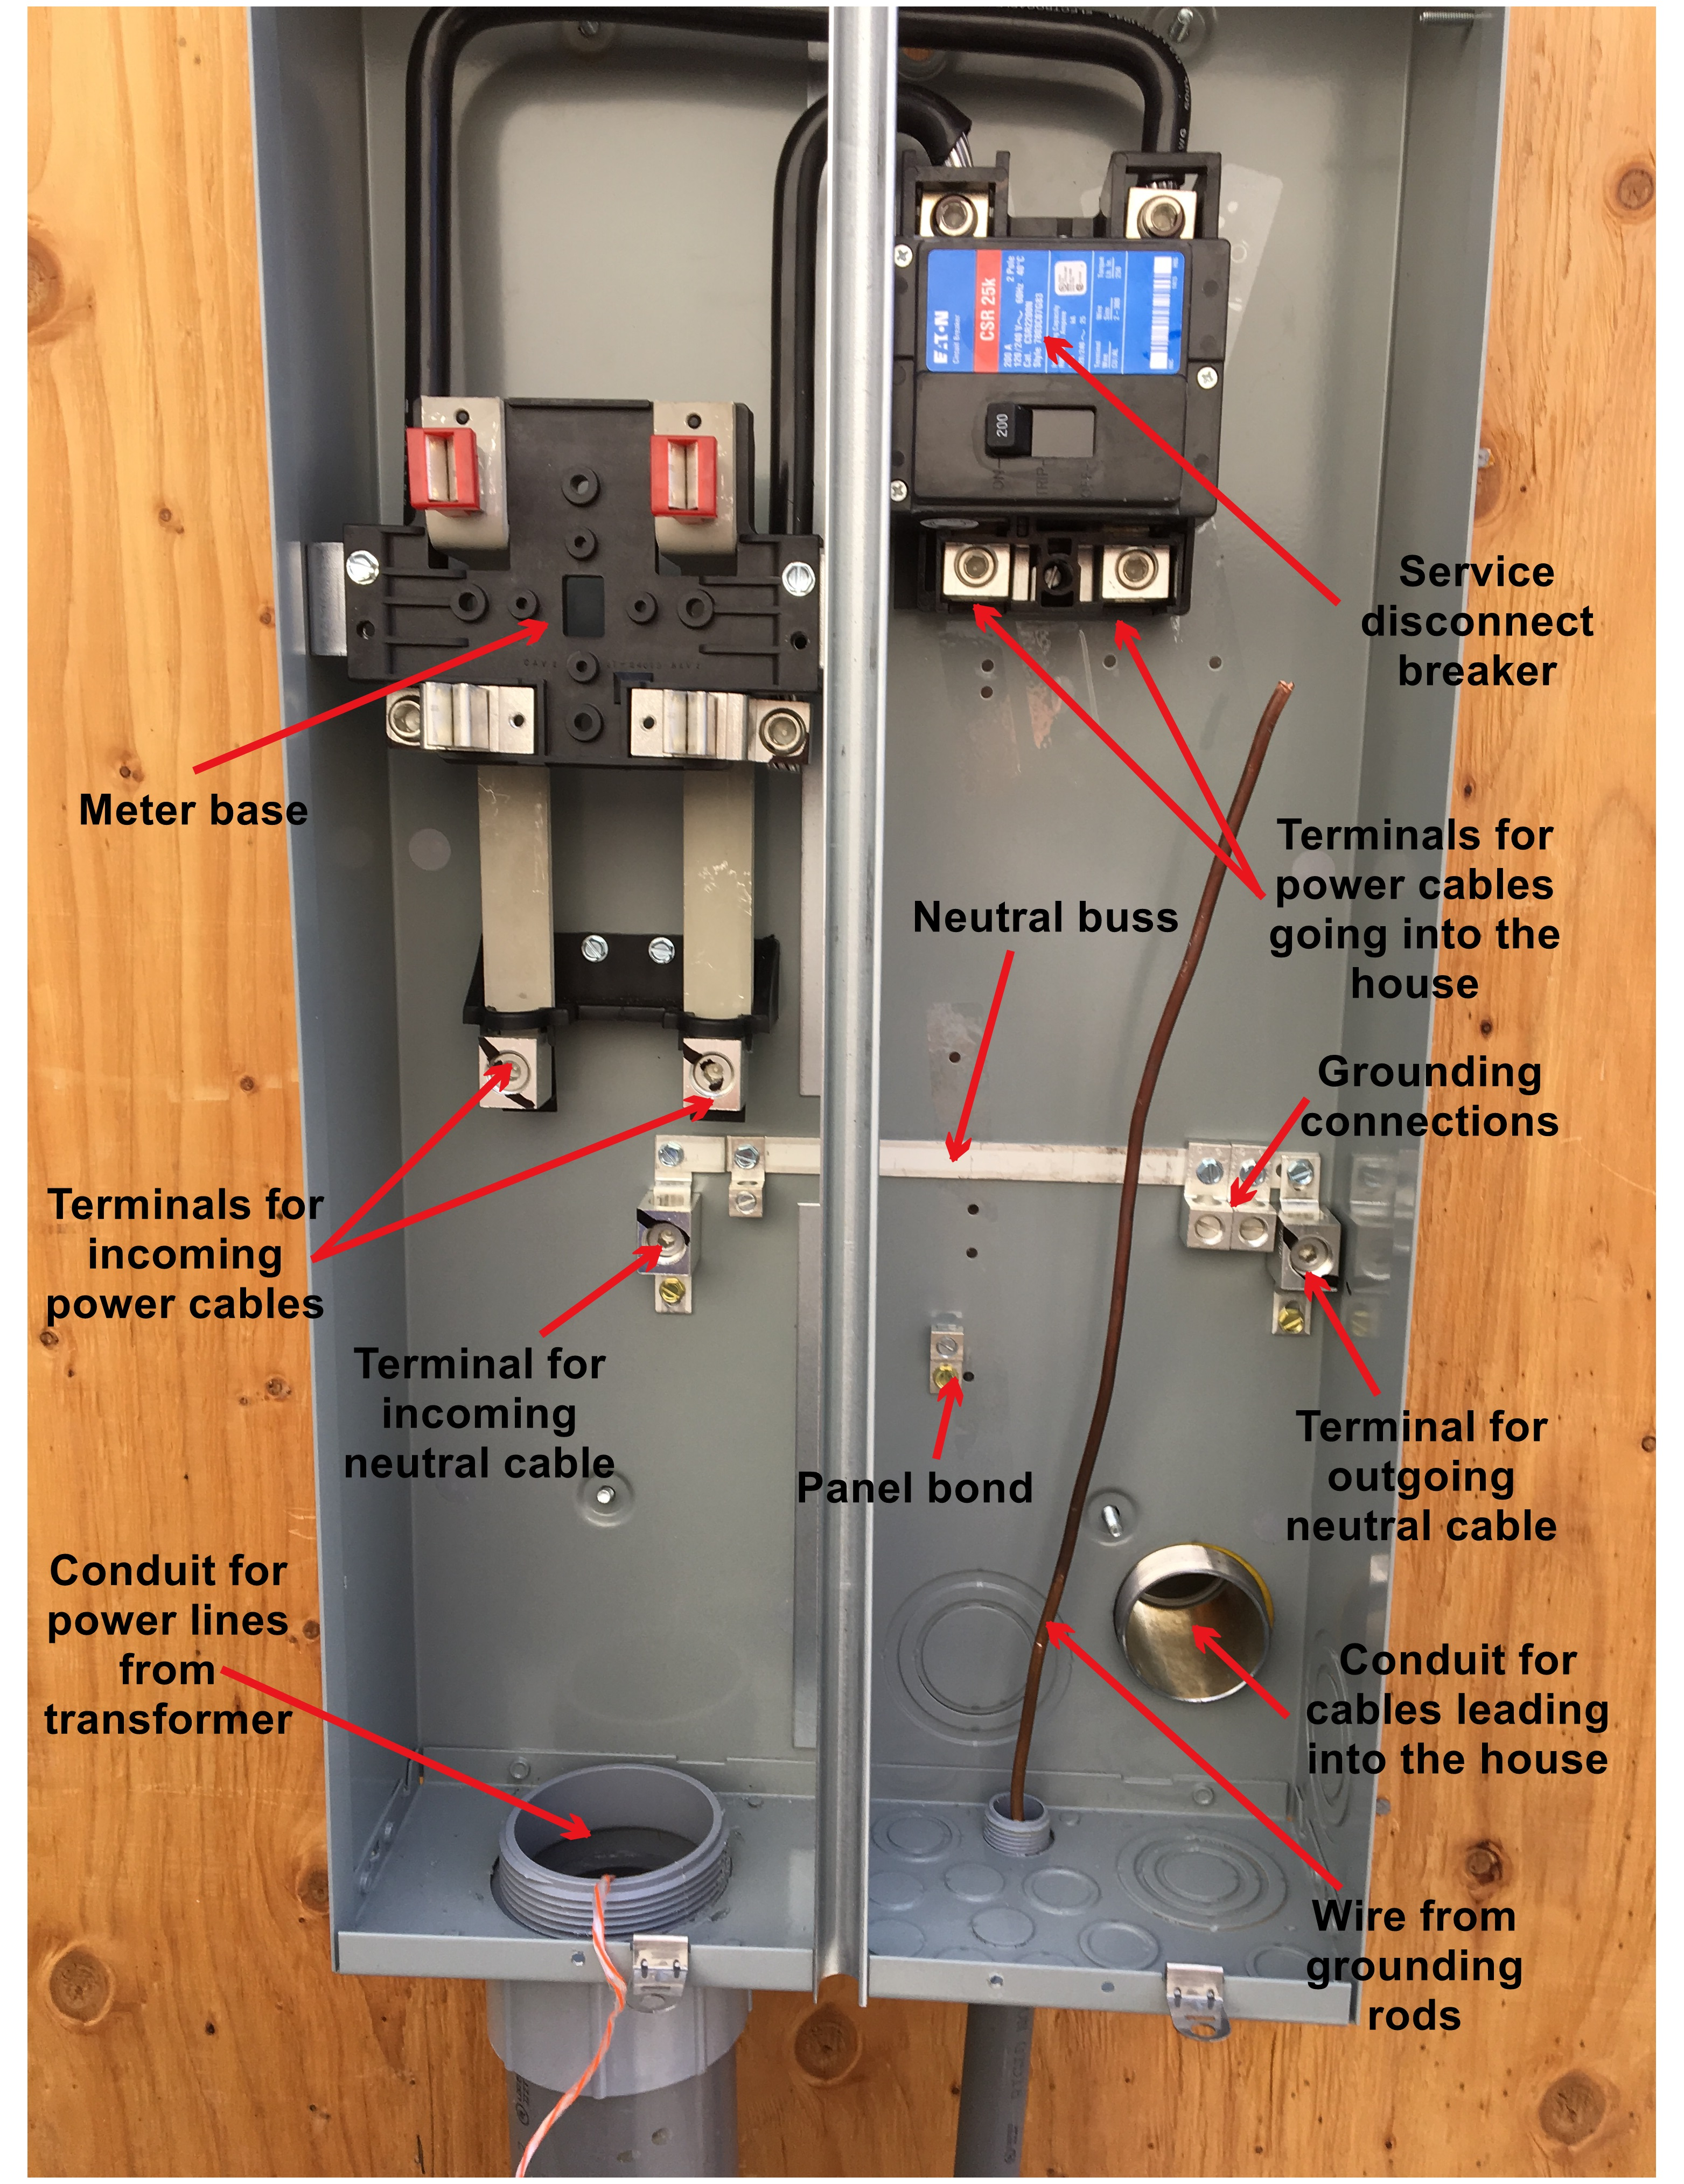 wiring up a meter base wiring diagrams 200 amp residential wiring diagram frank's home remodeling project 400 amp meter base wiring up a meter base